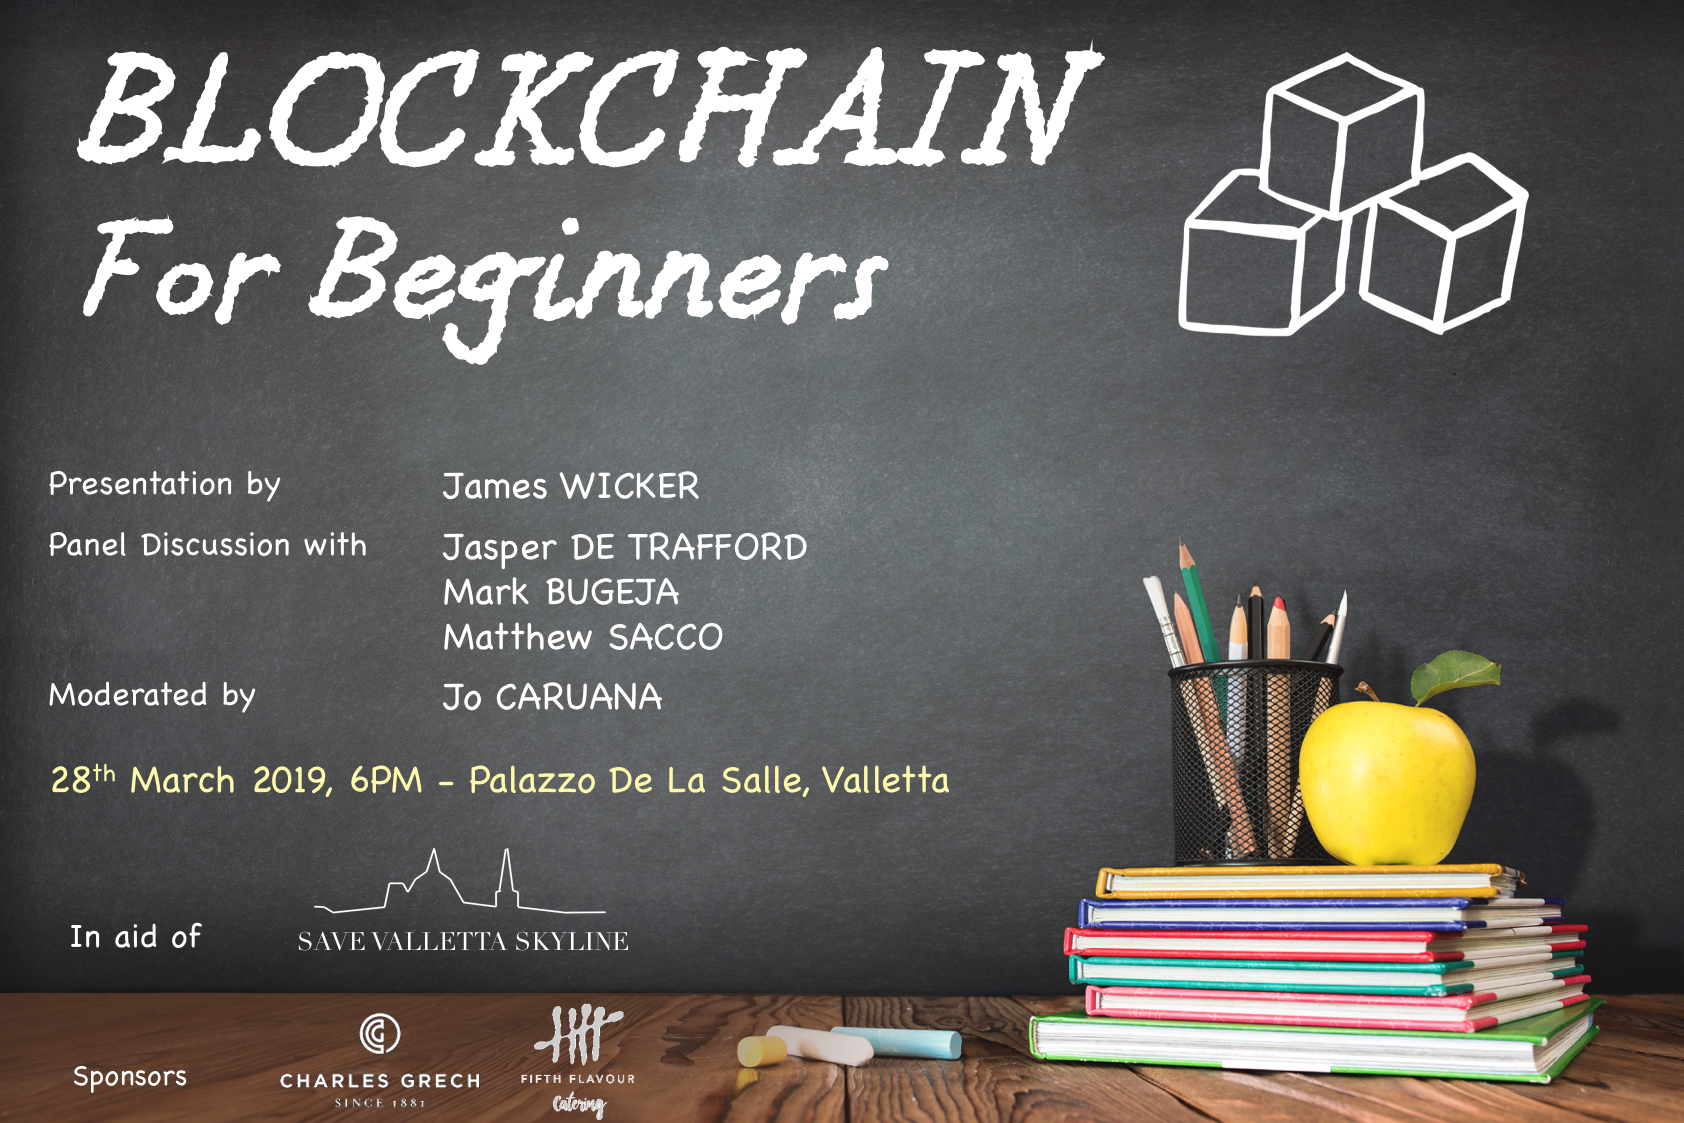 Blockchain for beginners - Poster (1)